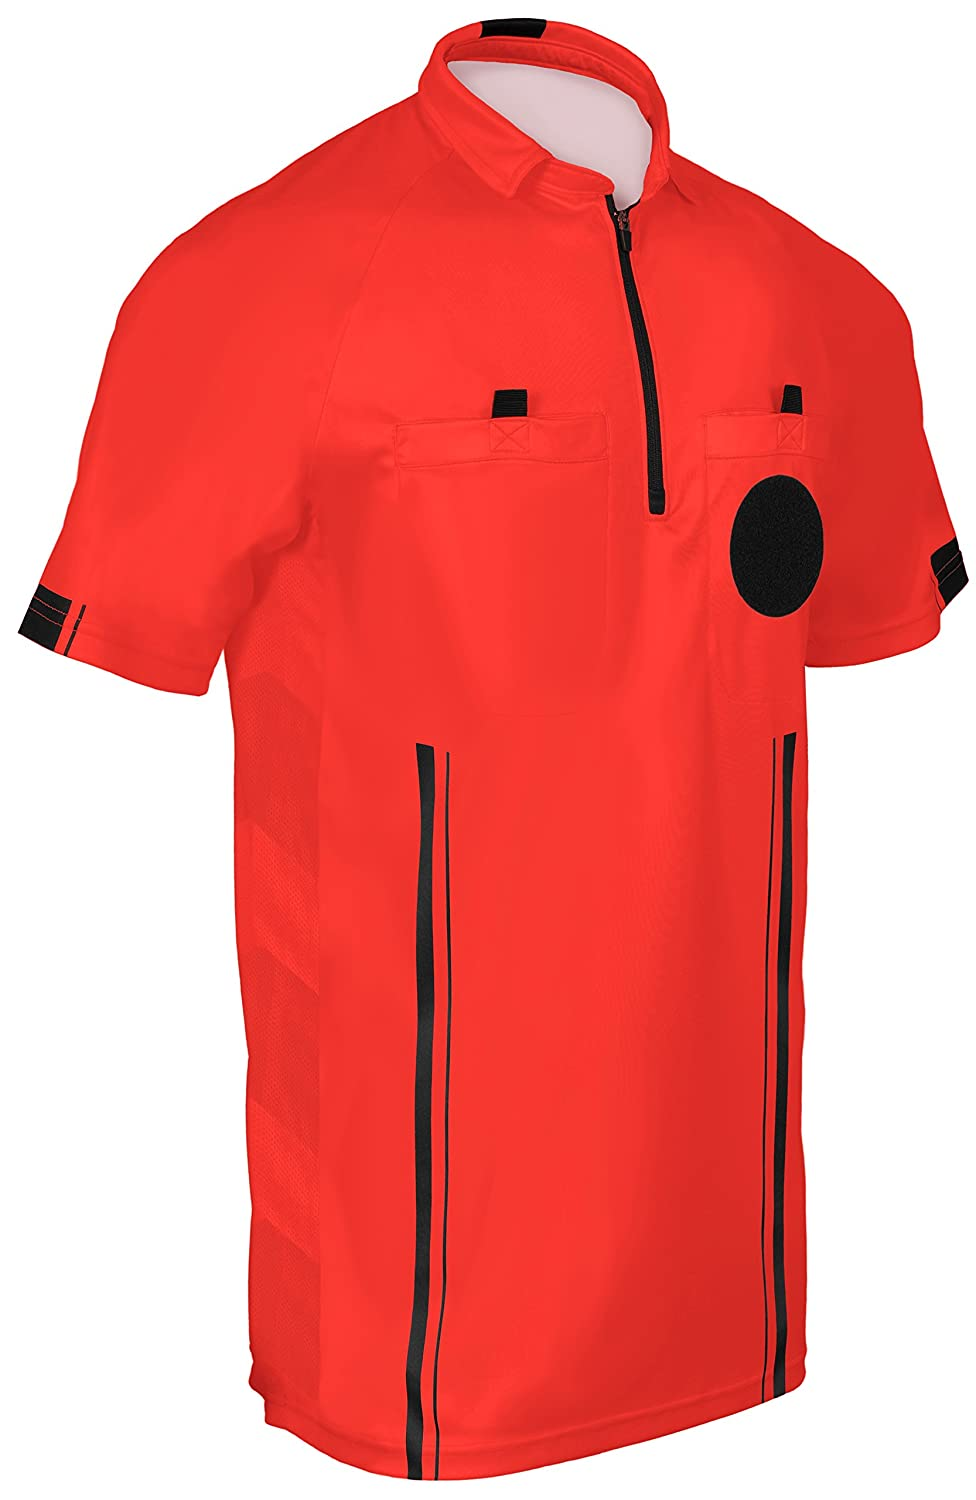 a6214f9c7ce Amazon.com  New! Soccer Referee Jersey  Sports   Outdoors